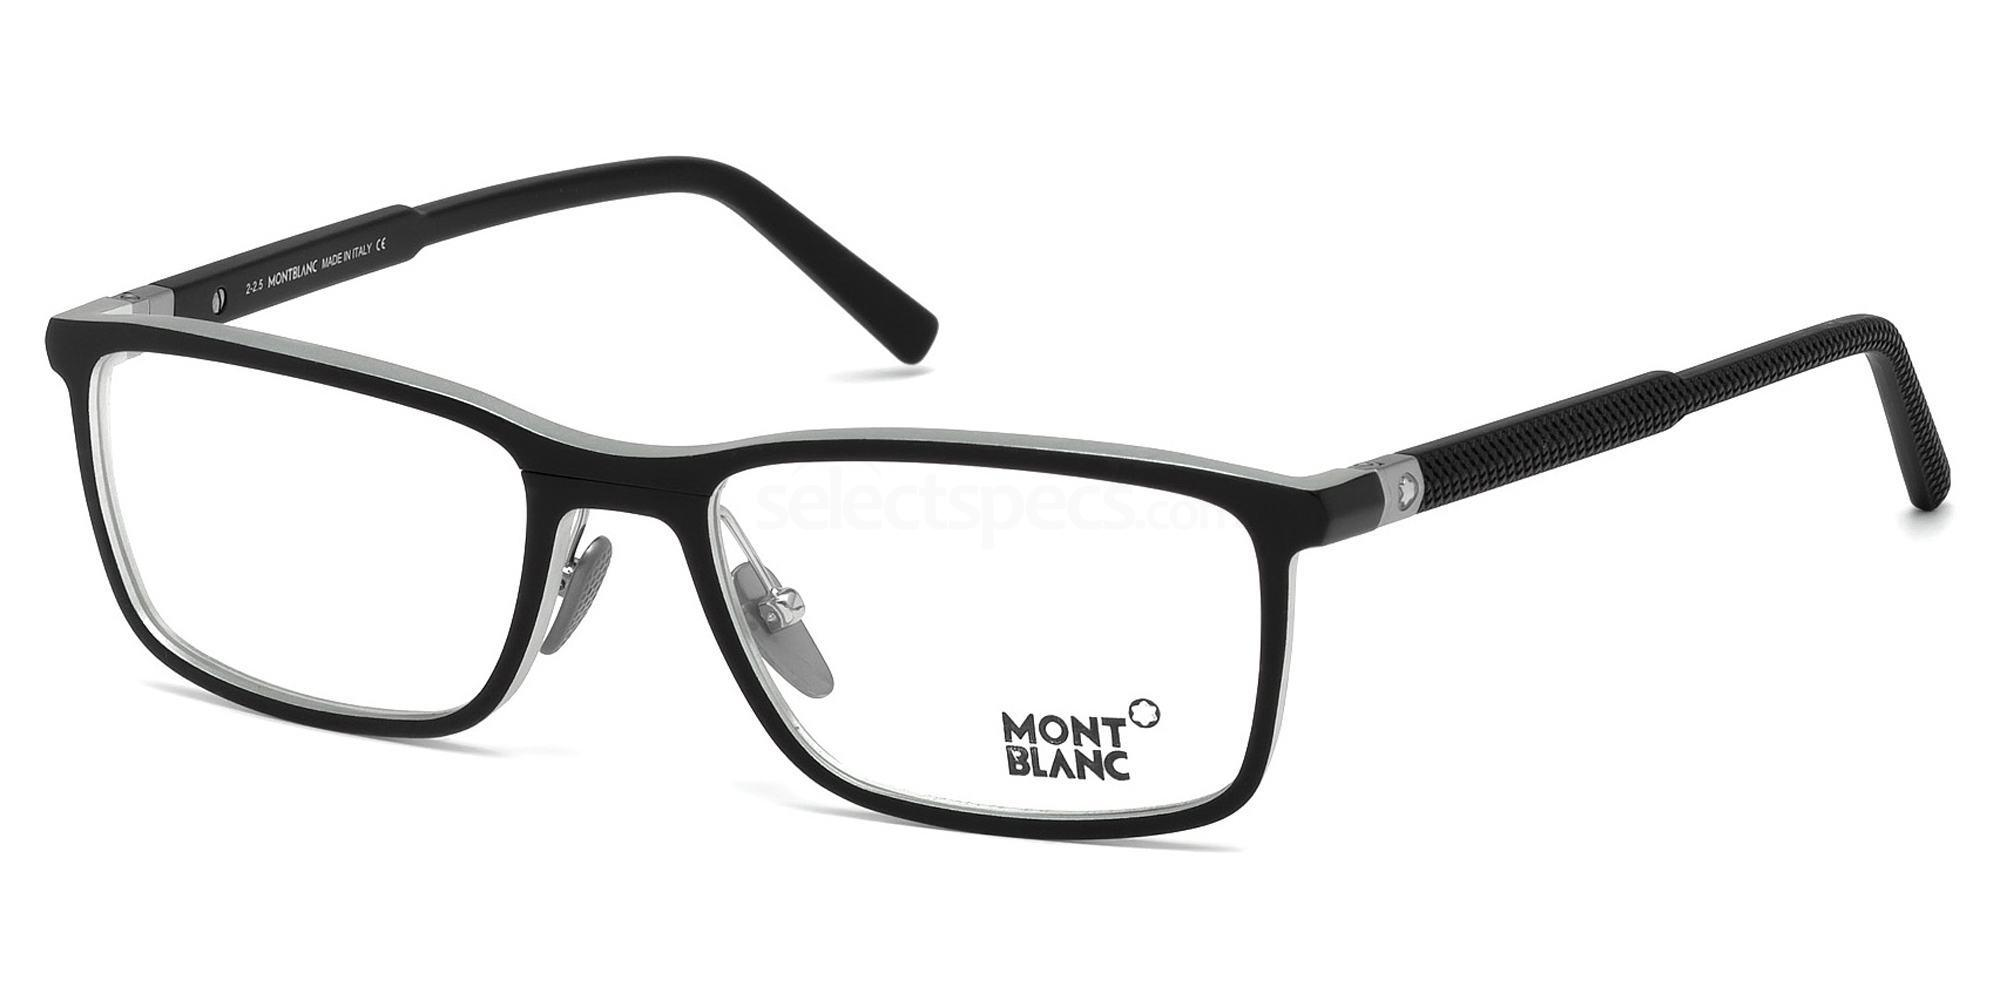 002 MB0616 Glasses, Mont Blanc